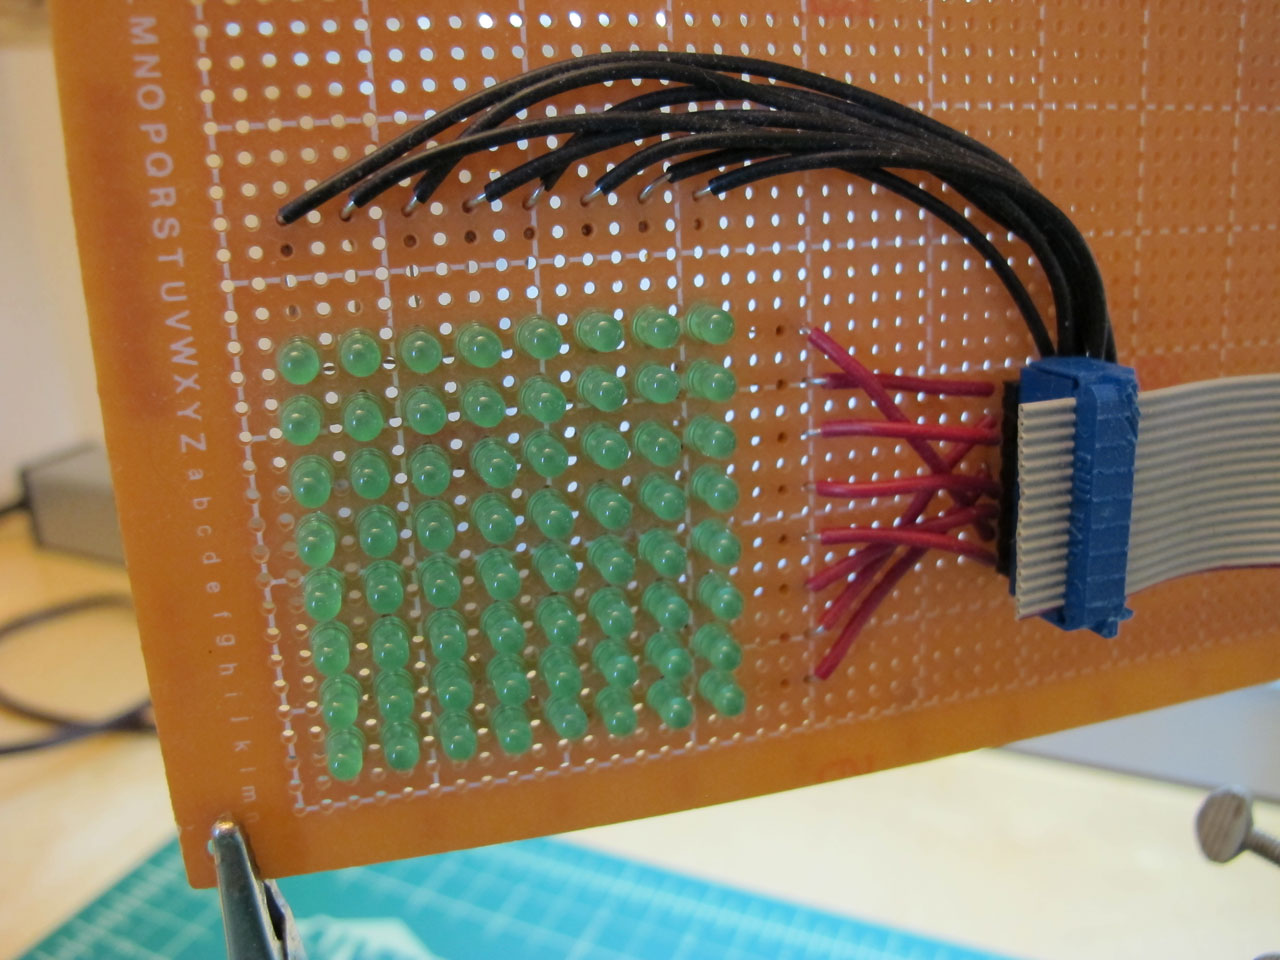 LED matrix front